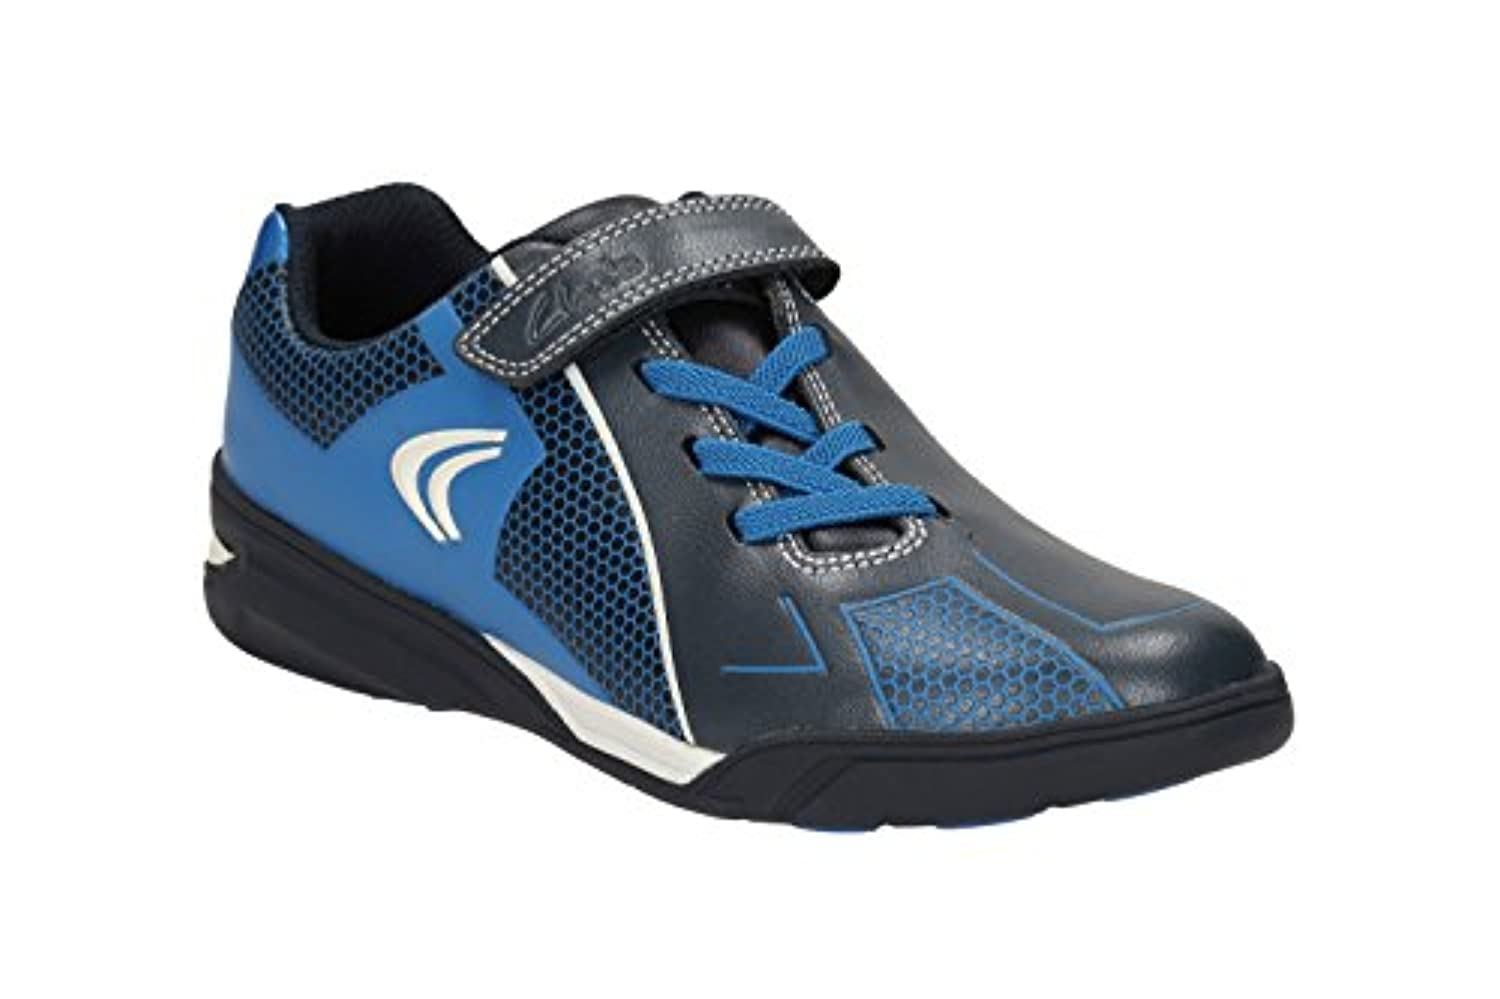 Clarks Boys Sport Out-Of-Sc Award Leap Jnr Leather Trainers In Navy Combi Narrow Fit Size 1